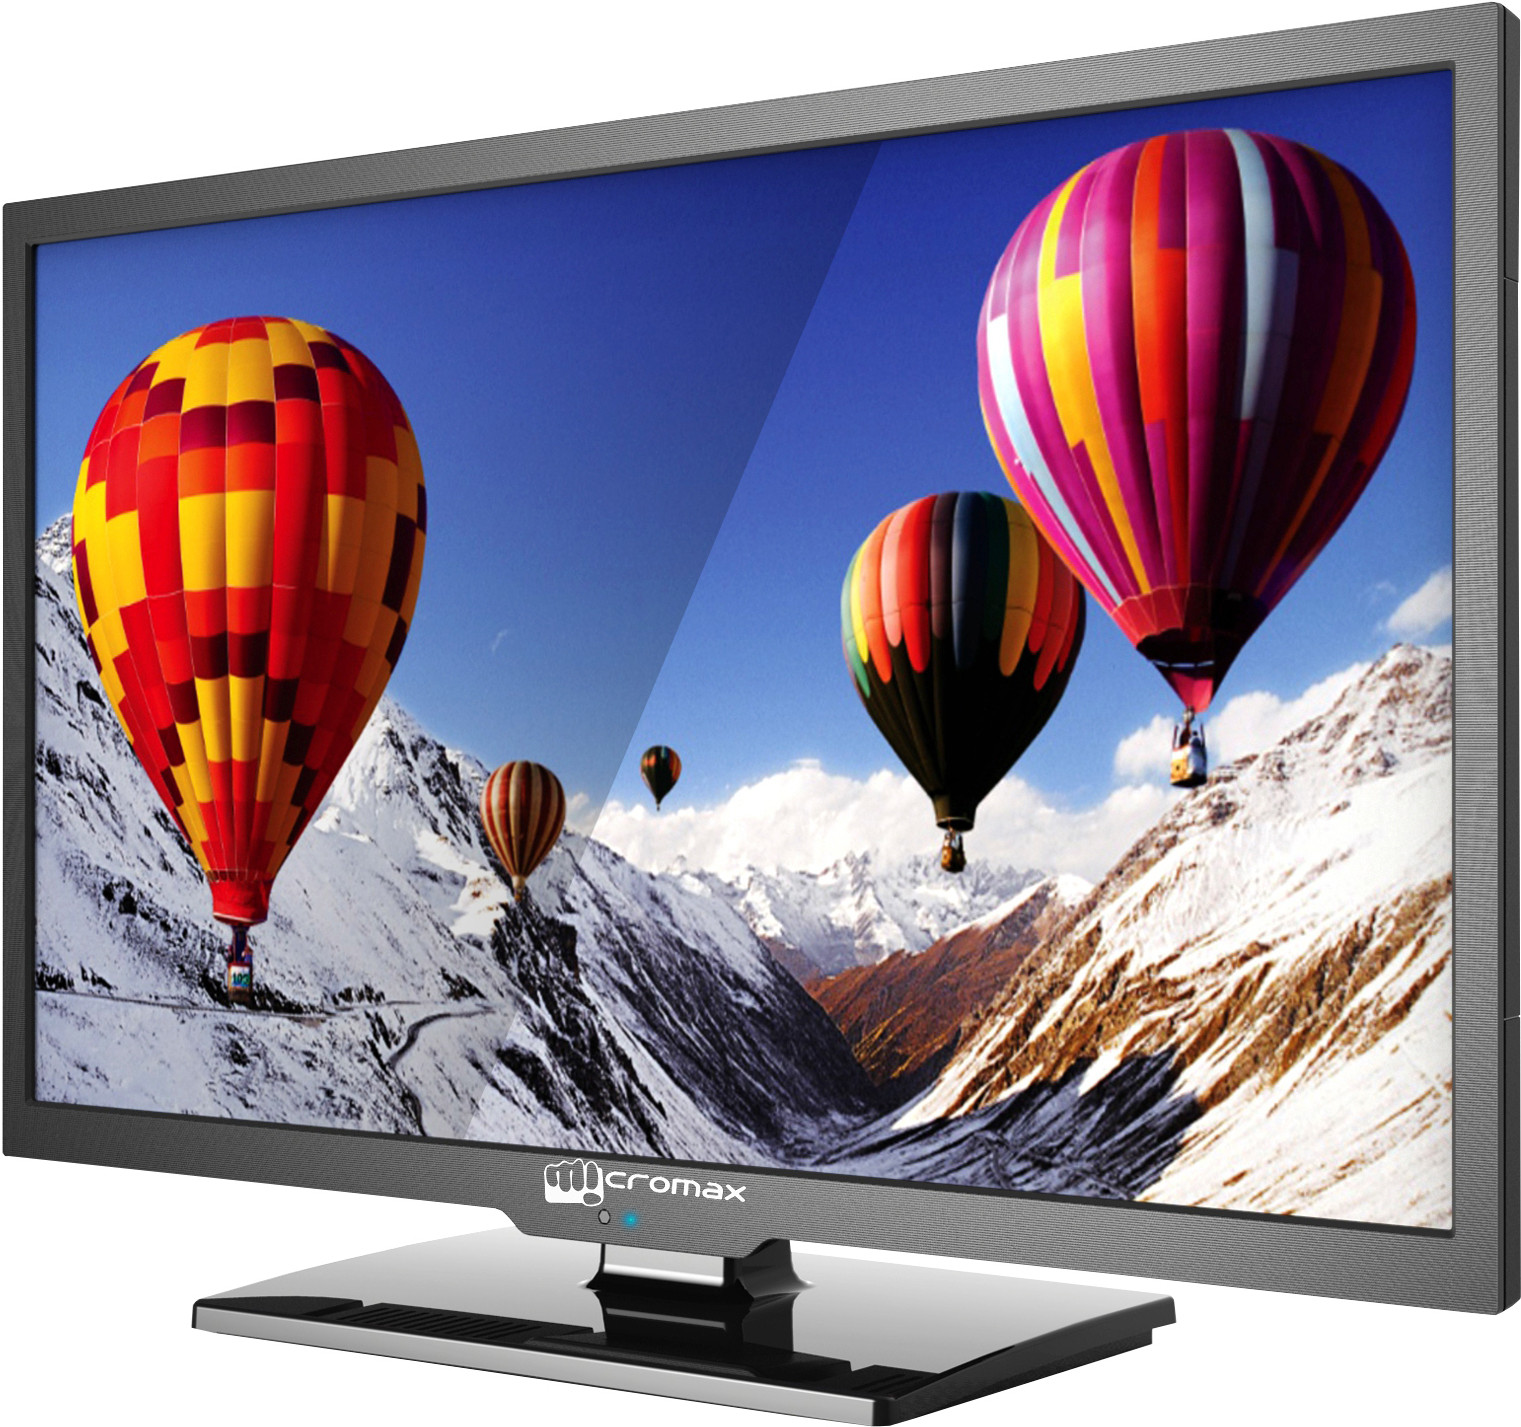 Micromax 60cm (24) HD Ready LED TV(24B600HD, 1 x HDMI, 1 x USB)